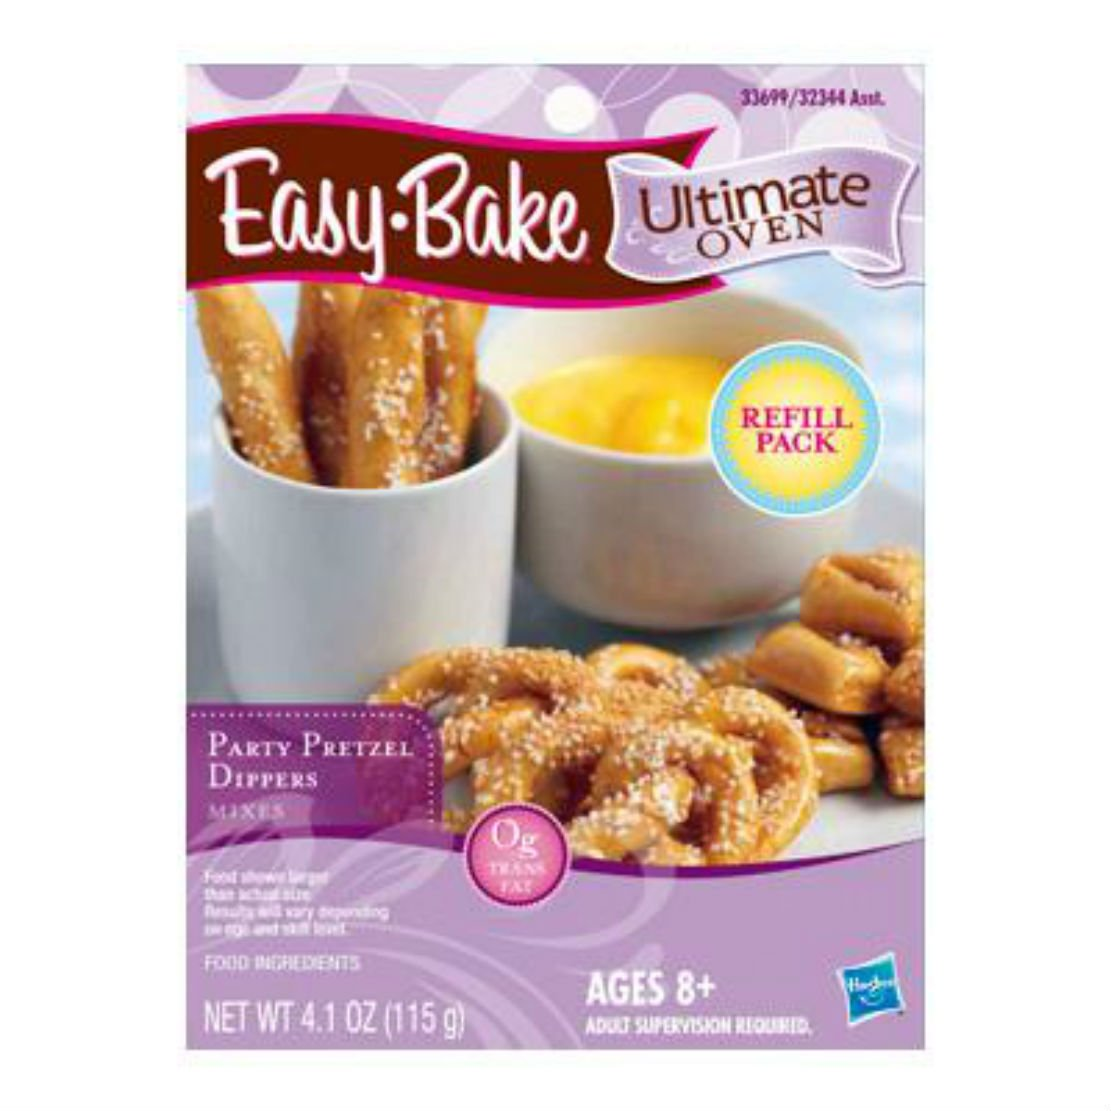 Easy-Bake Ultimate Oven - Party Pretzel Dippers Mix by Easy Bake